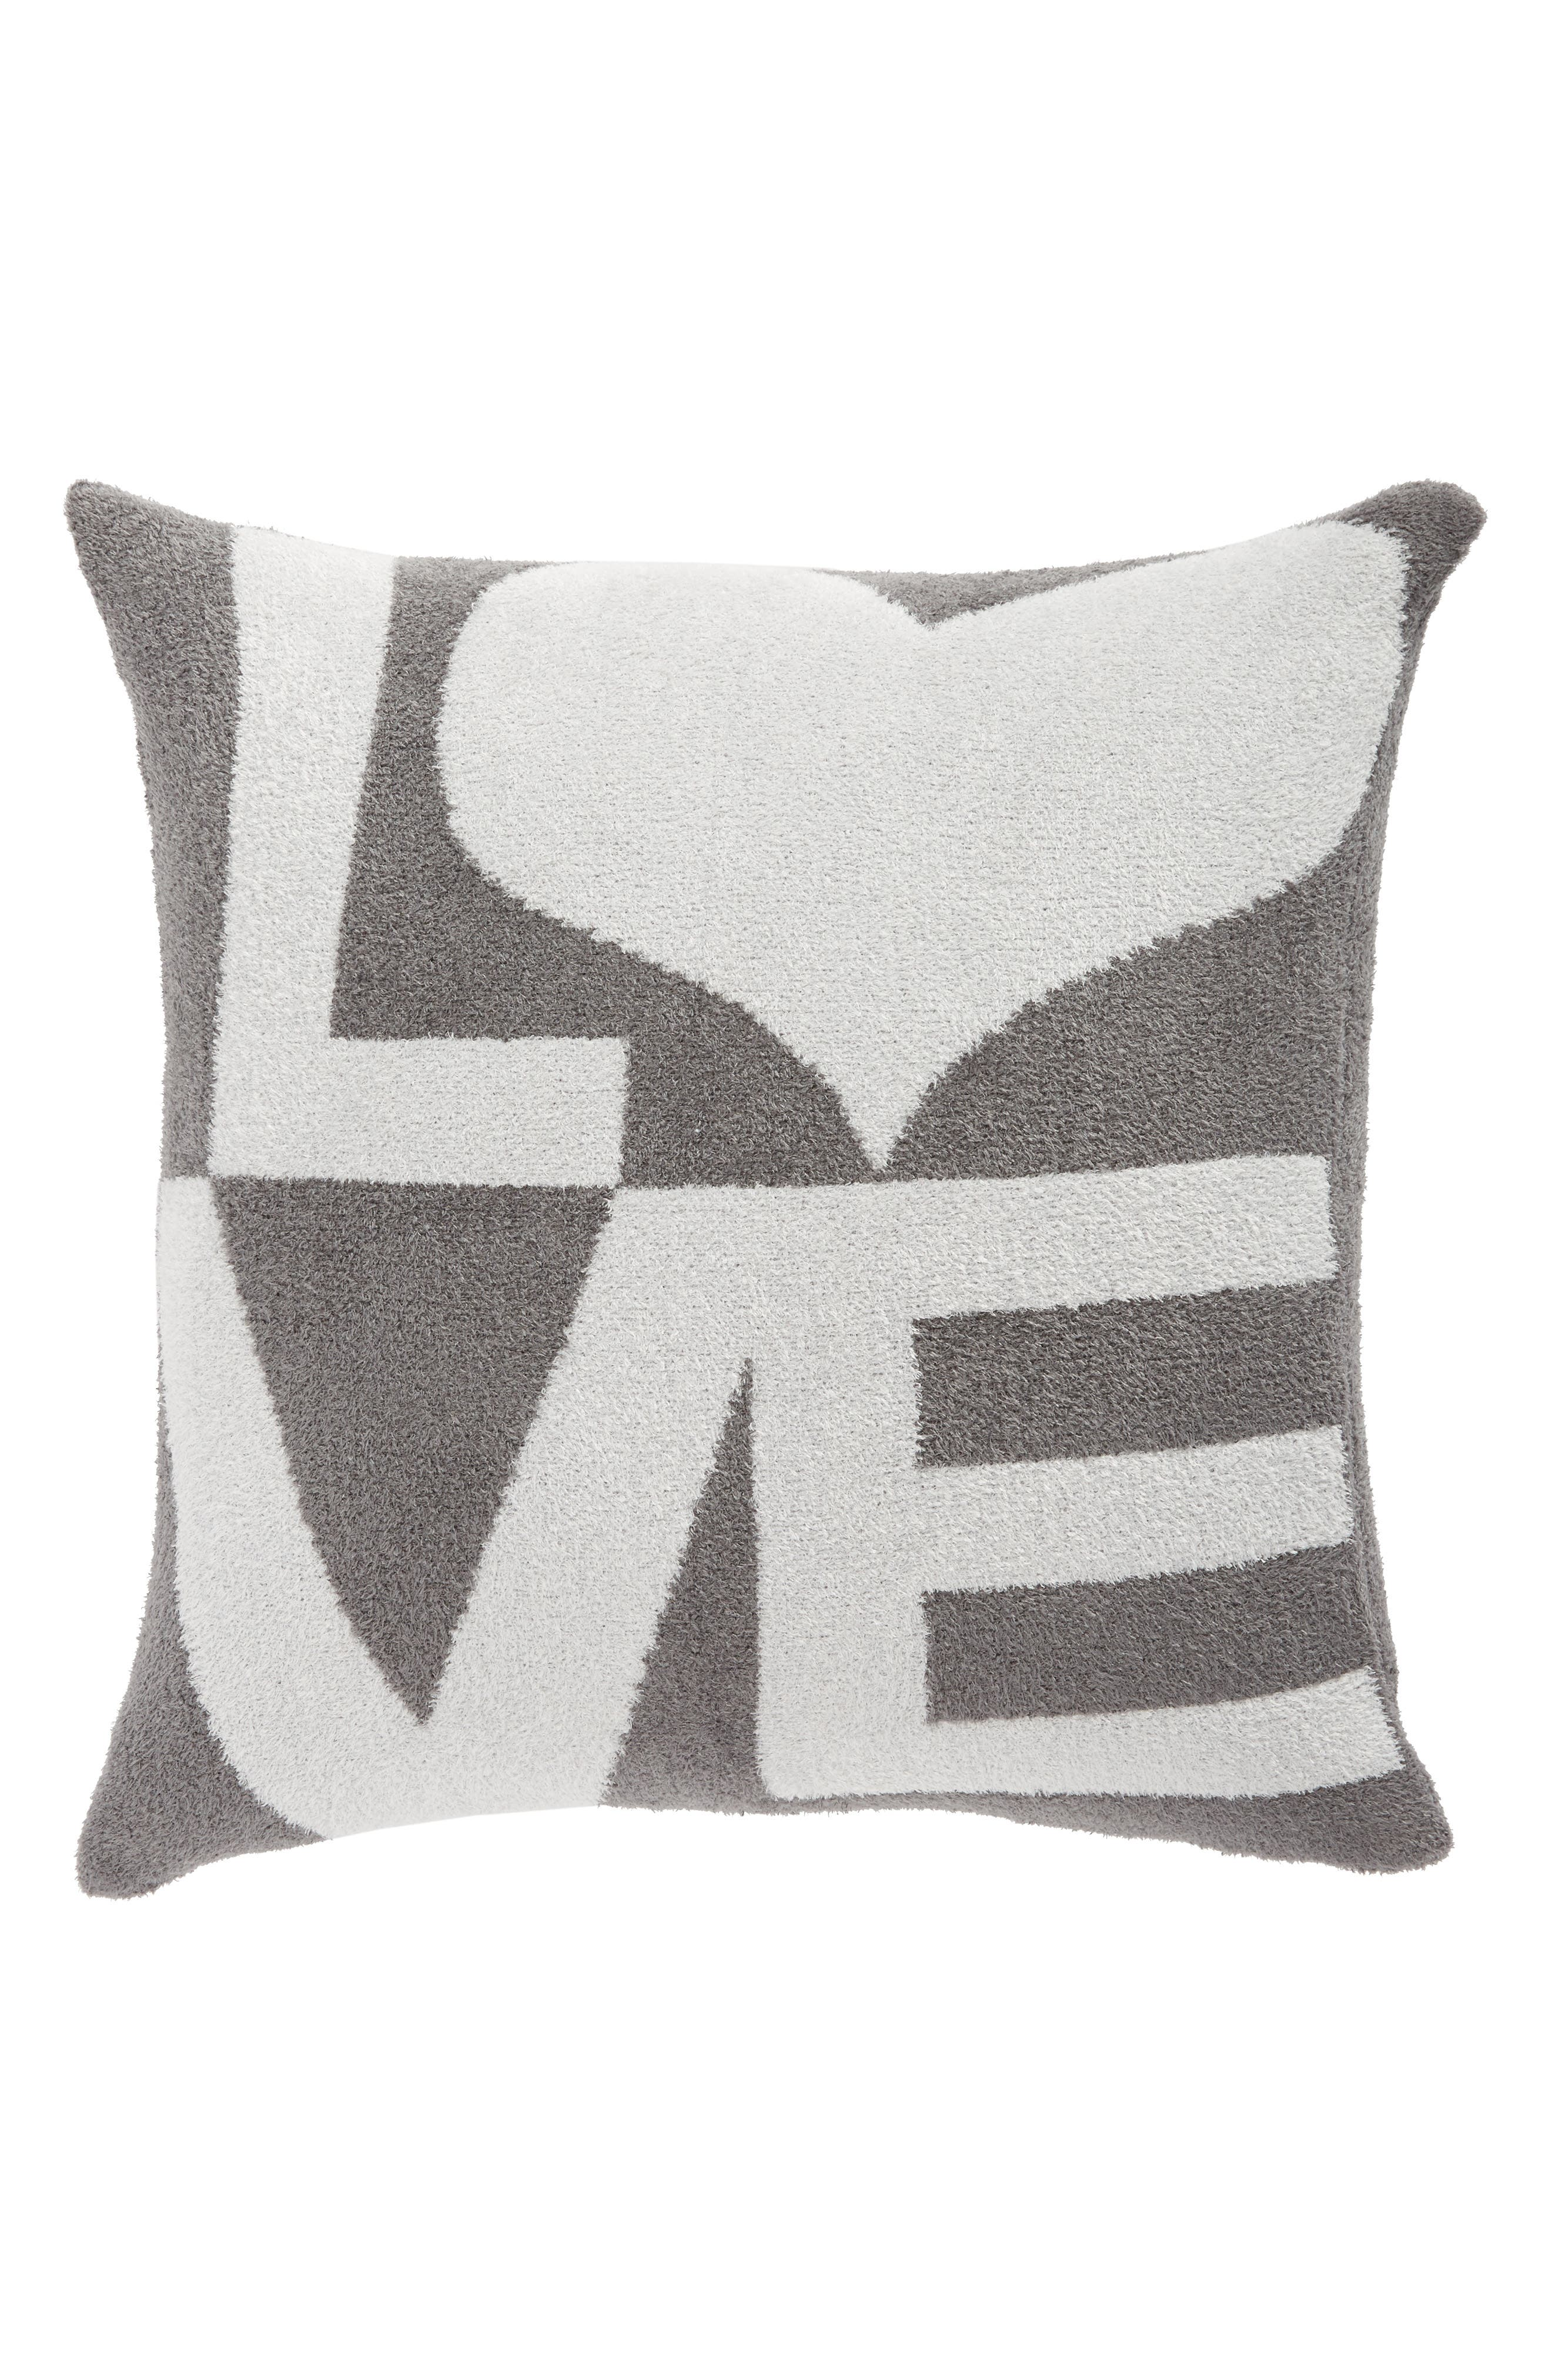 Dolce Love Throw Pillow,                             Main thumbnail 1, color,                             Charcoal/ Silver